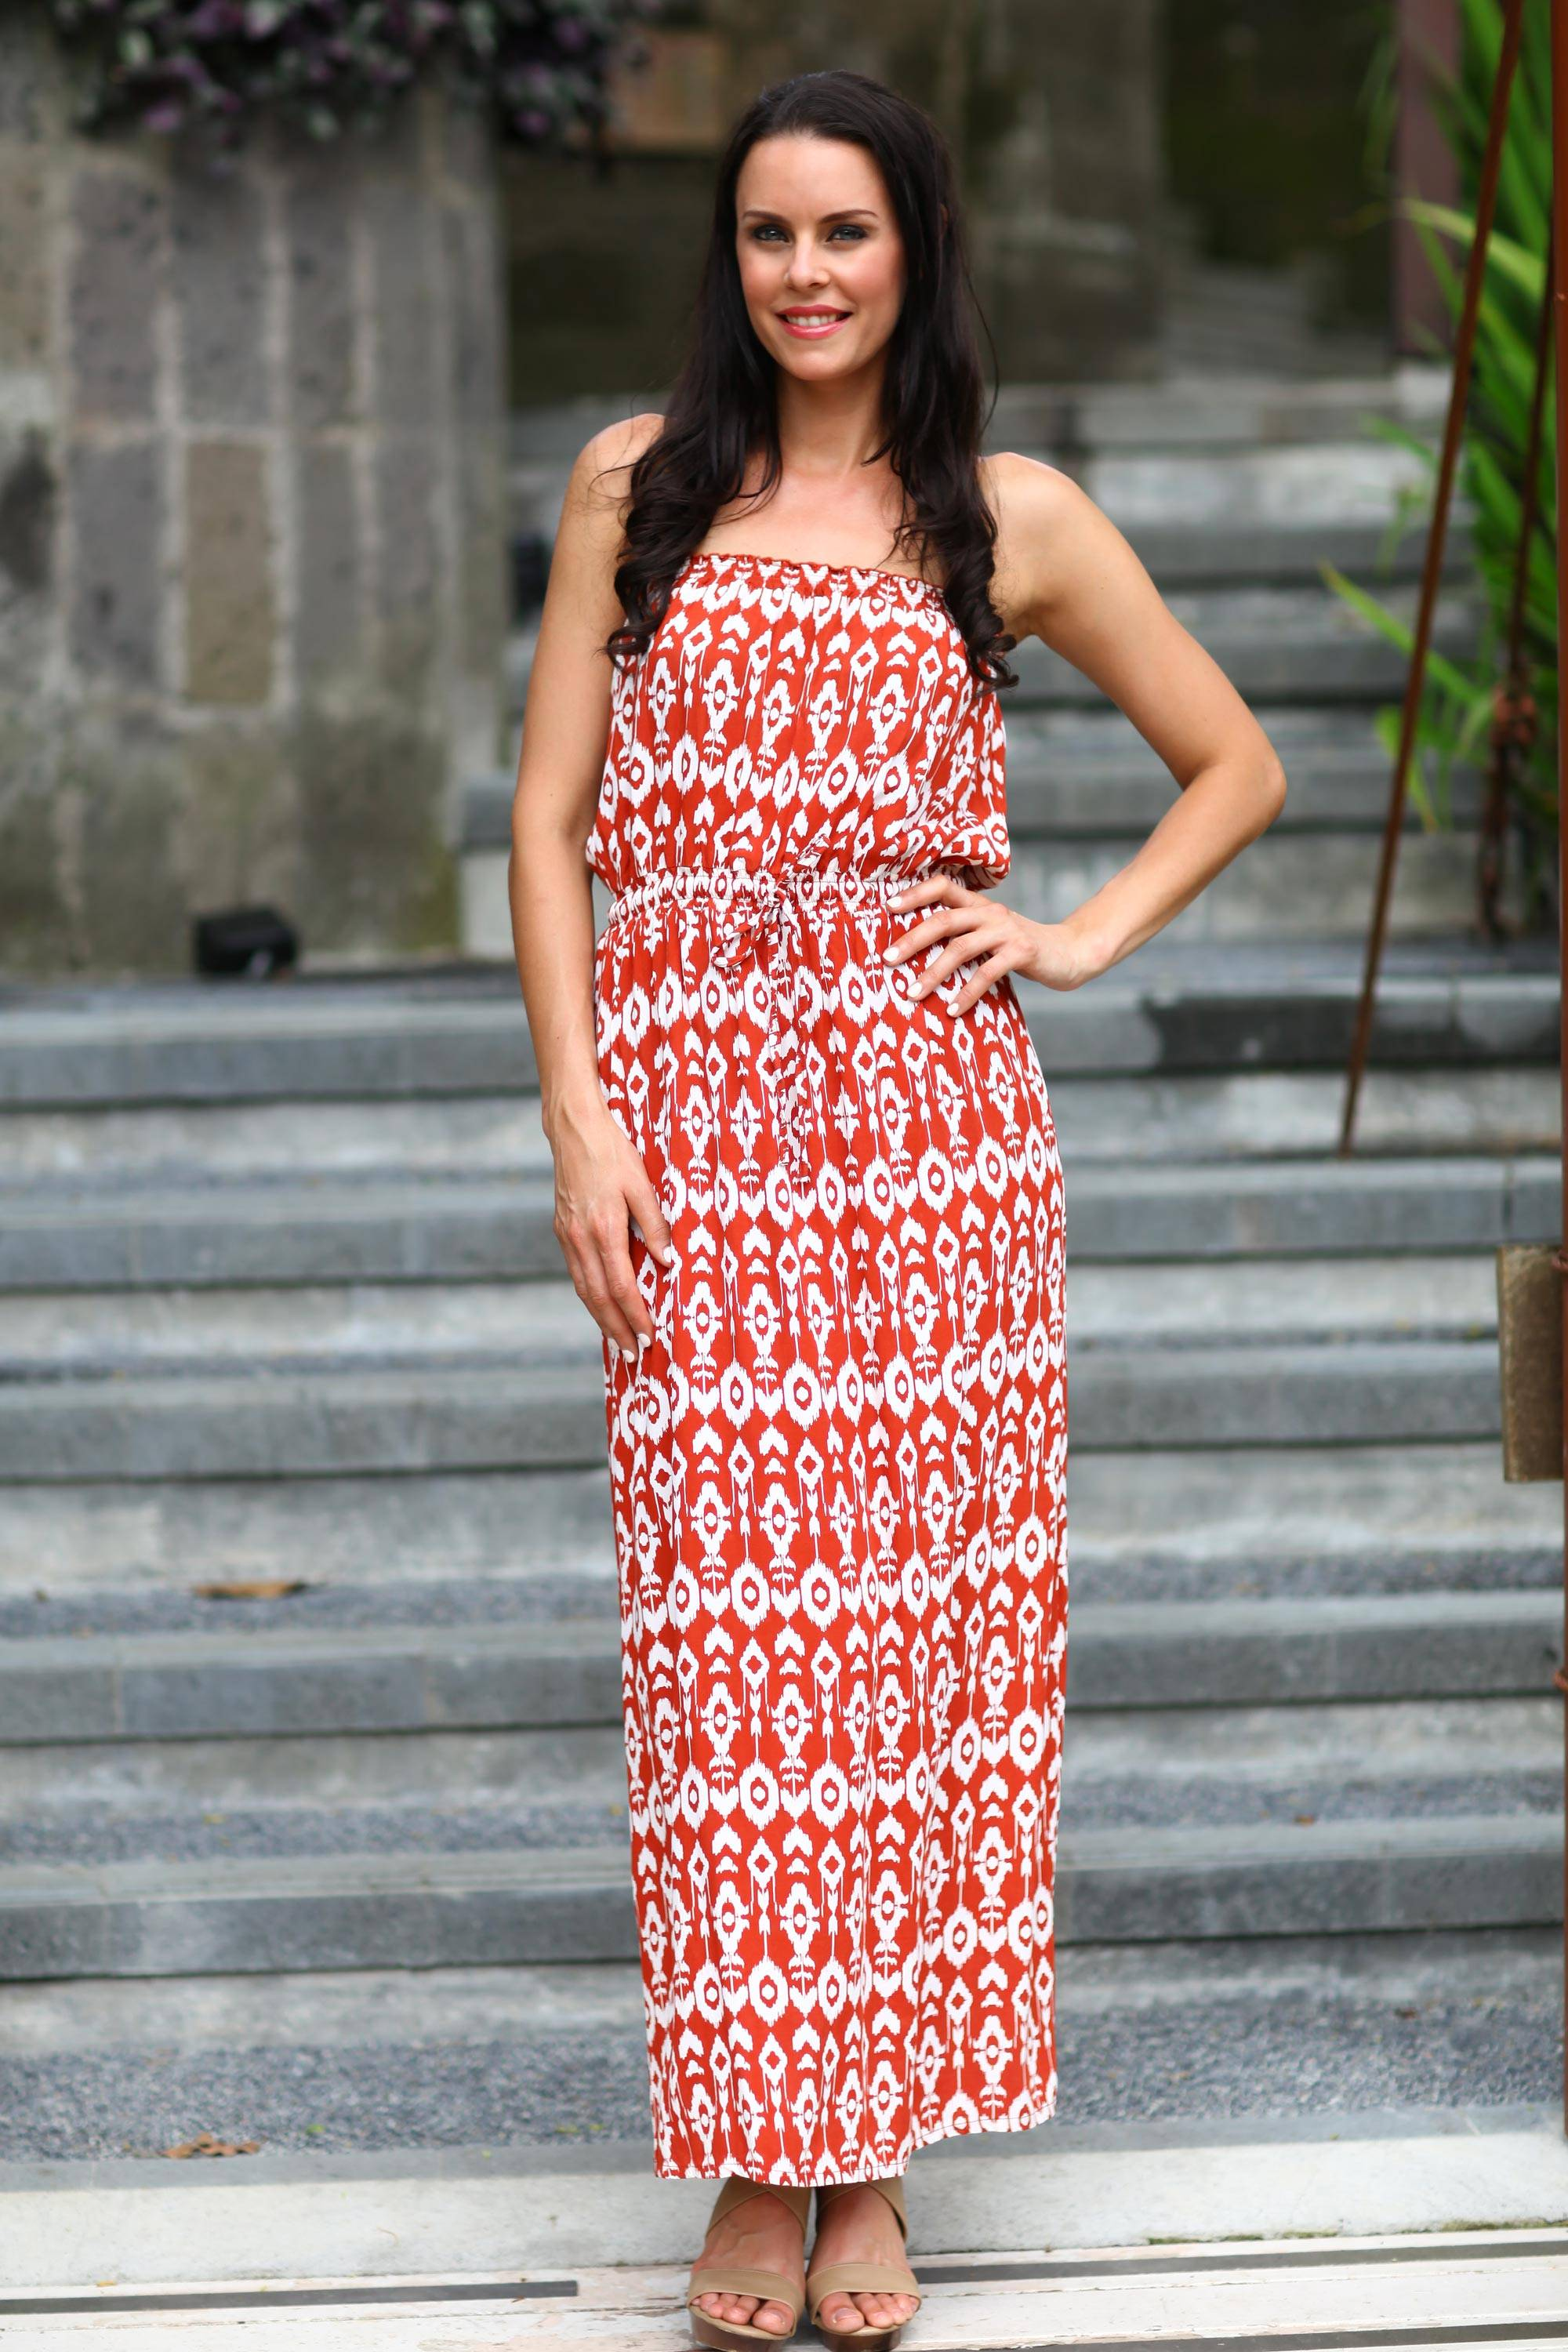 Handcrafted Women's Batik Patterned Maxi Dress, 'Tulip' - my favorite type of summer dress! Orange Red White spaghetti straps